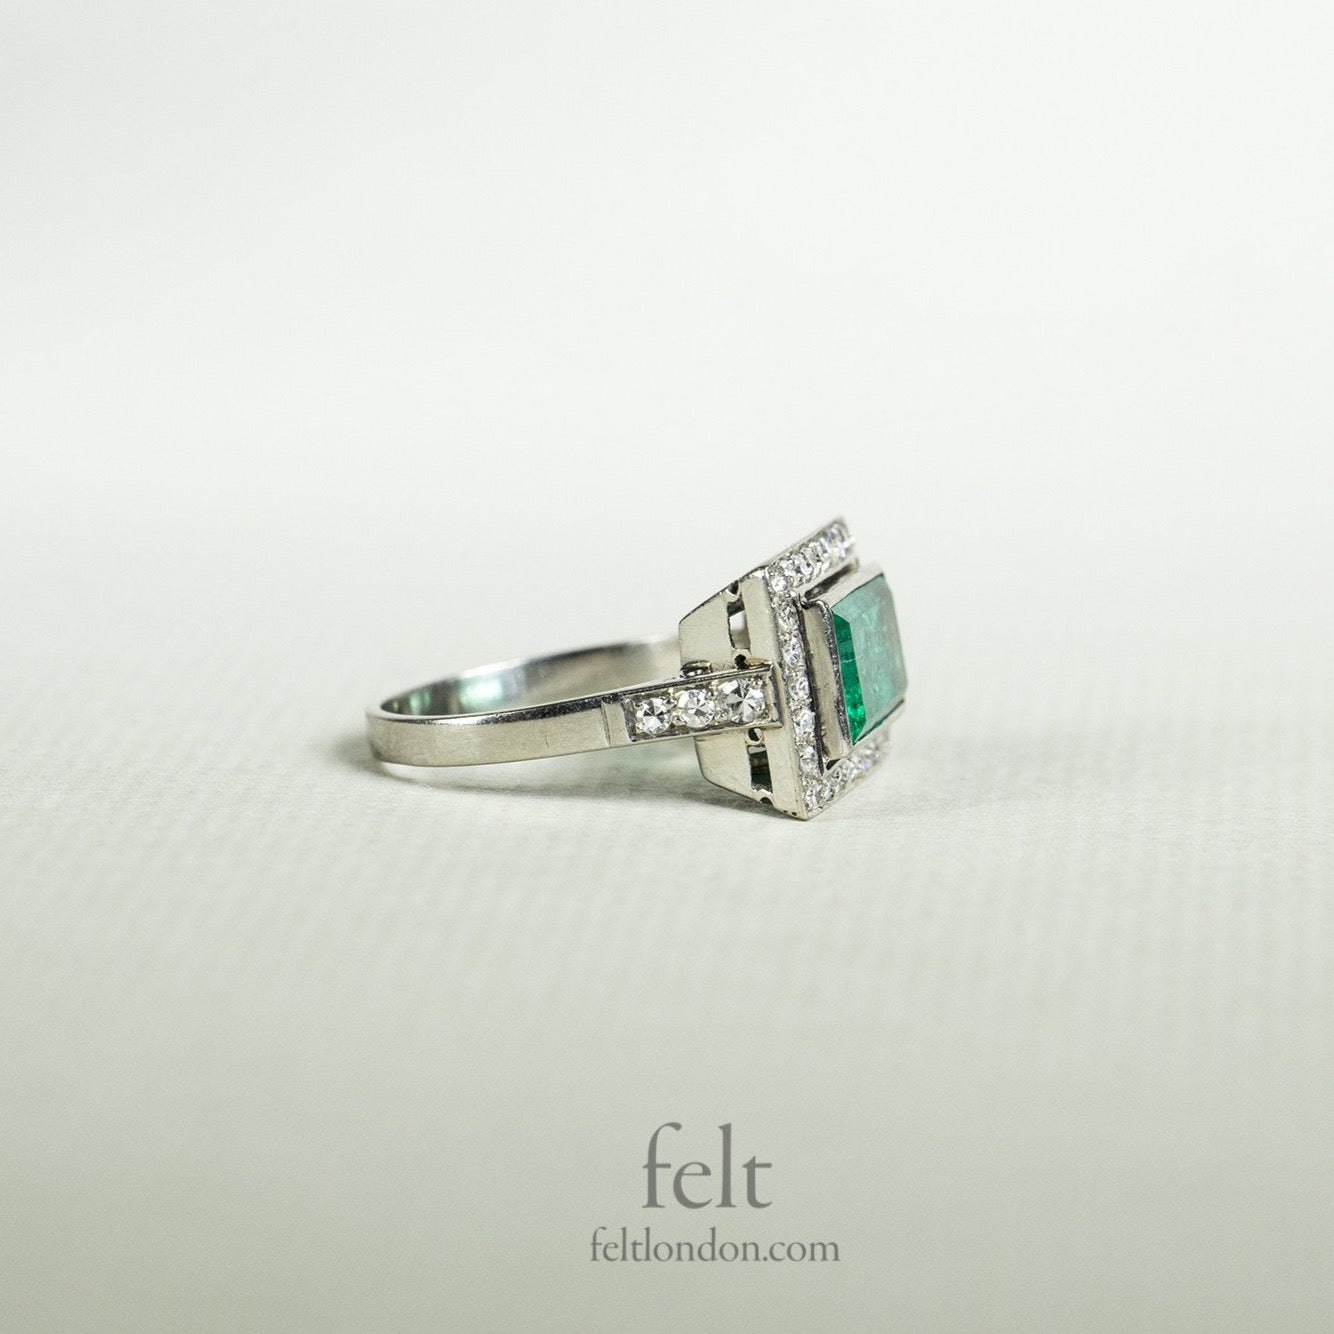 incredible colour and shine of the diamonds and the fantastic emerald